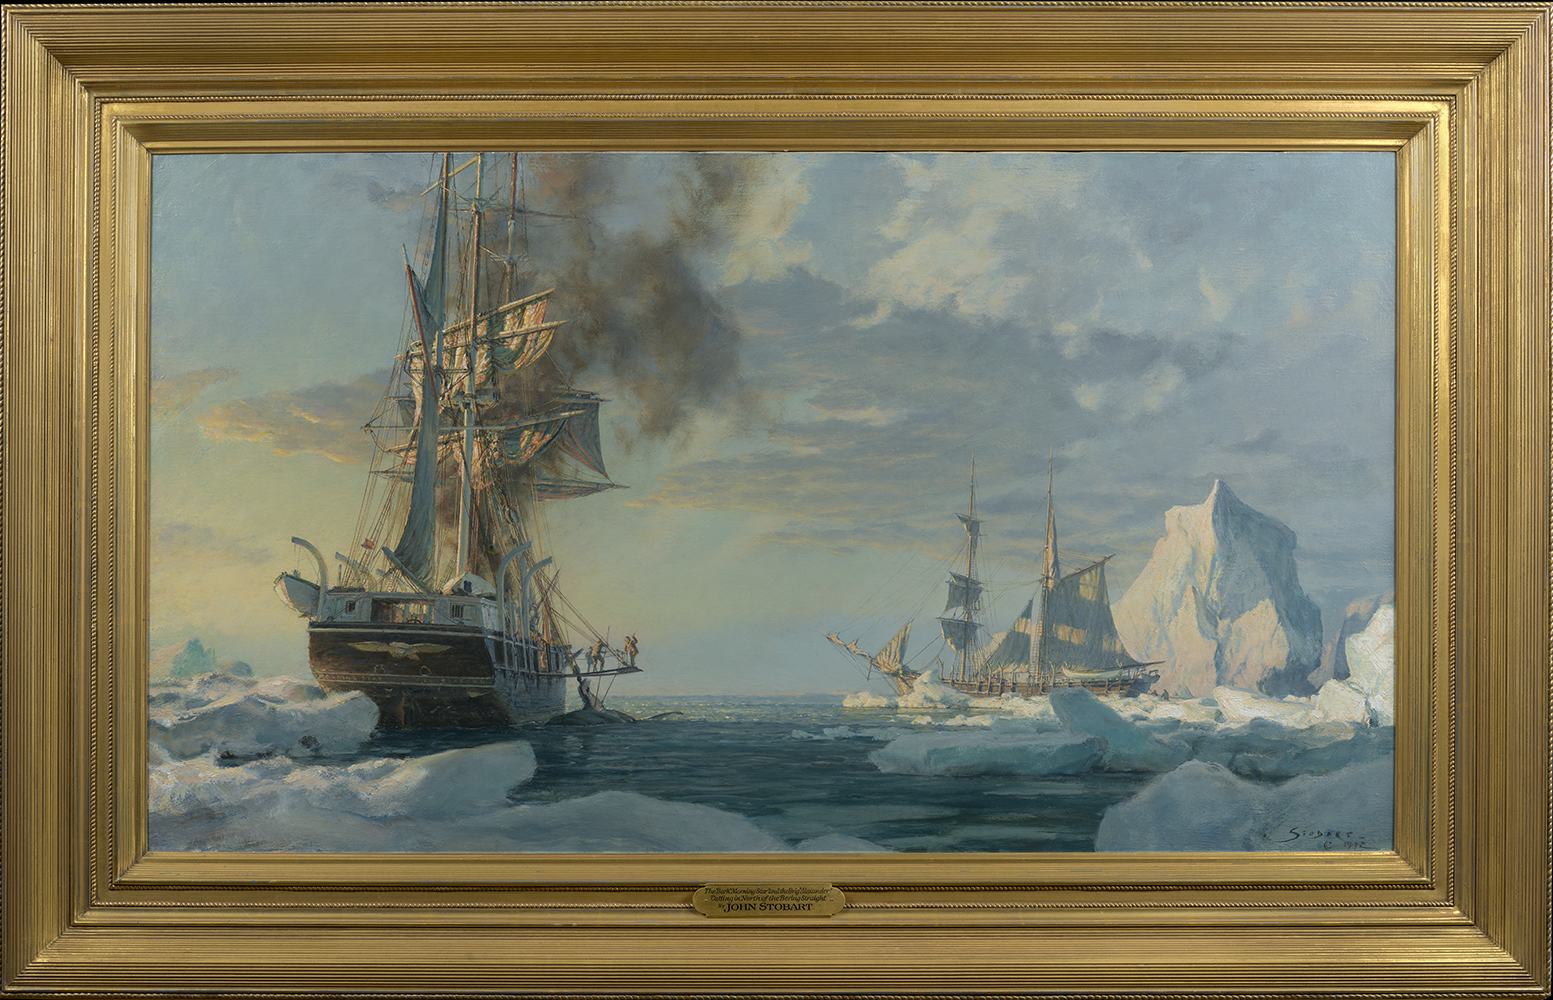 john_stobart_js1026_the_bark_morning_star_and_the_brig_alexander_cutting_in_north_of_the_bering_strait_1972_framed.jpg